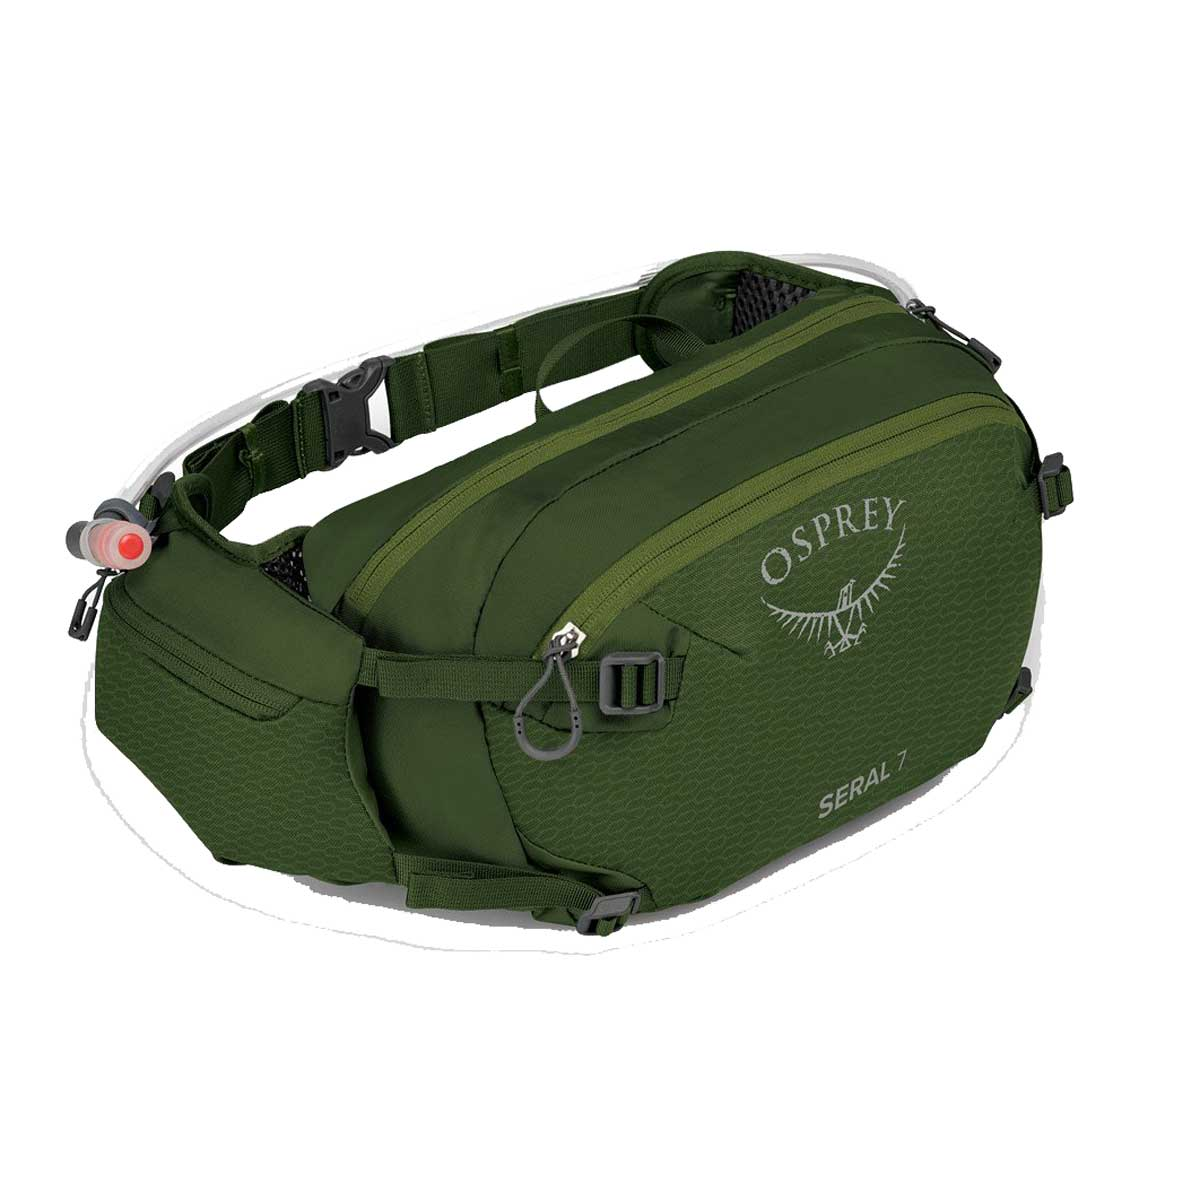 Osprey Seral 7 Pack with Reservoir in Dustmoss Green